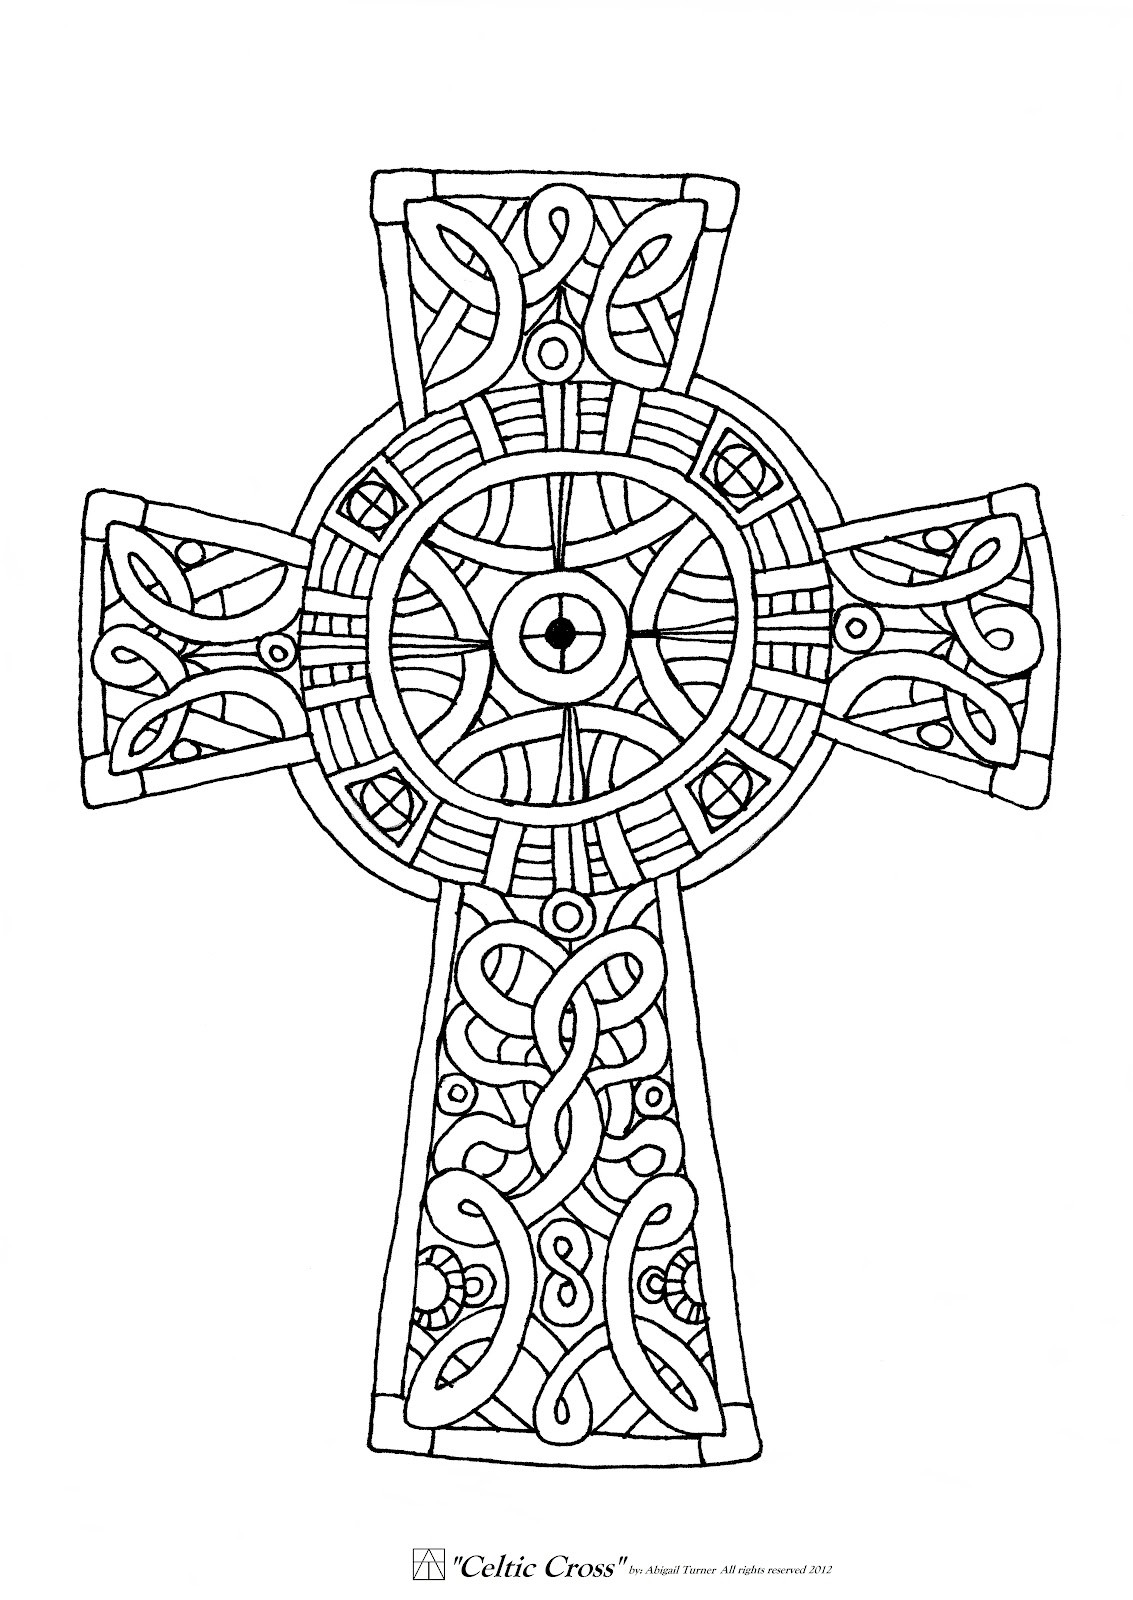 1133x1600 Destiny Pictures Of Crosses To Color Hearts With Dragon Tattoo